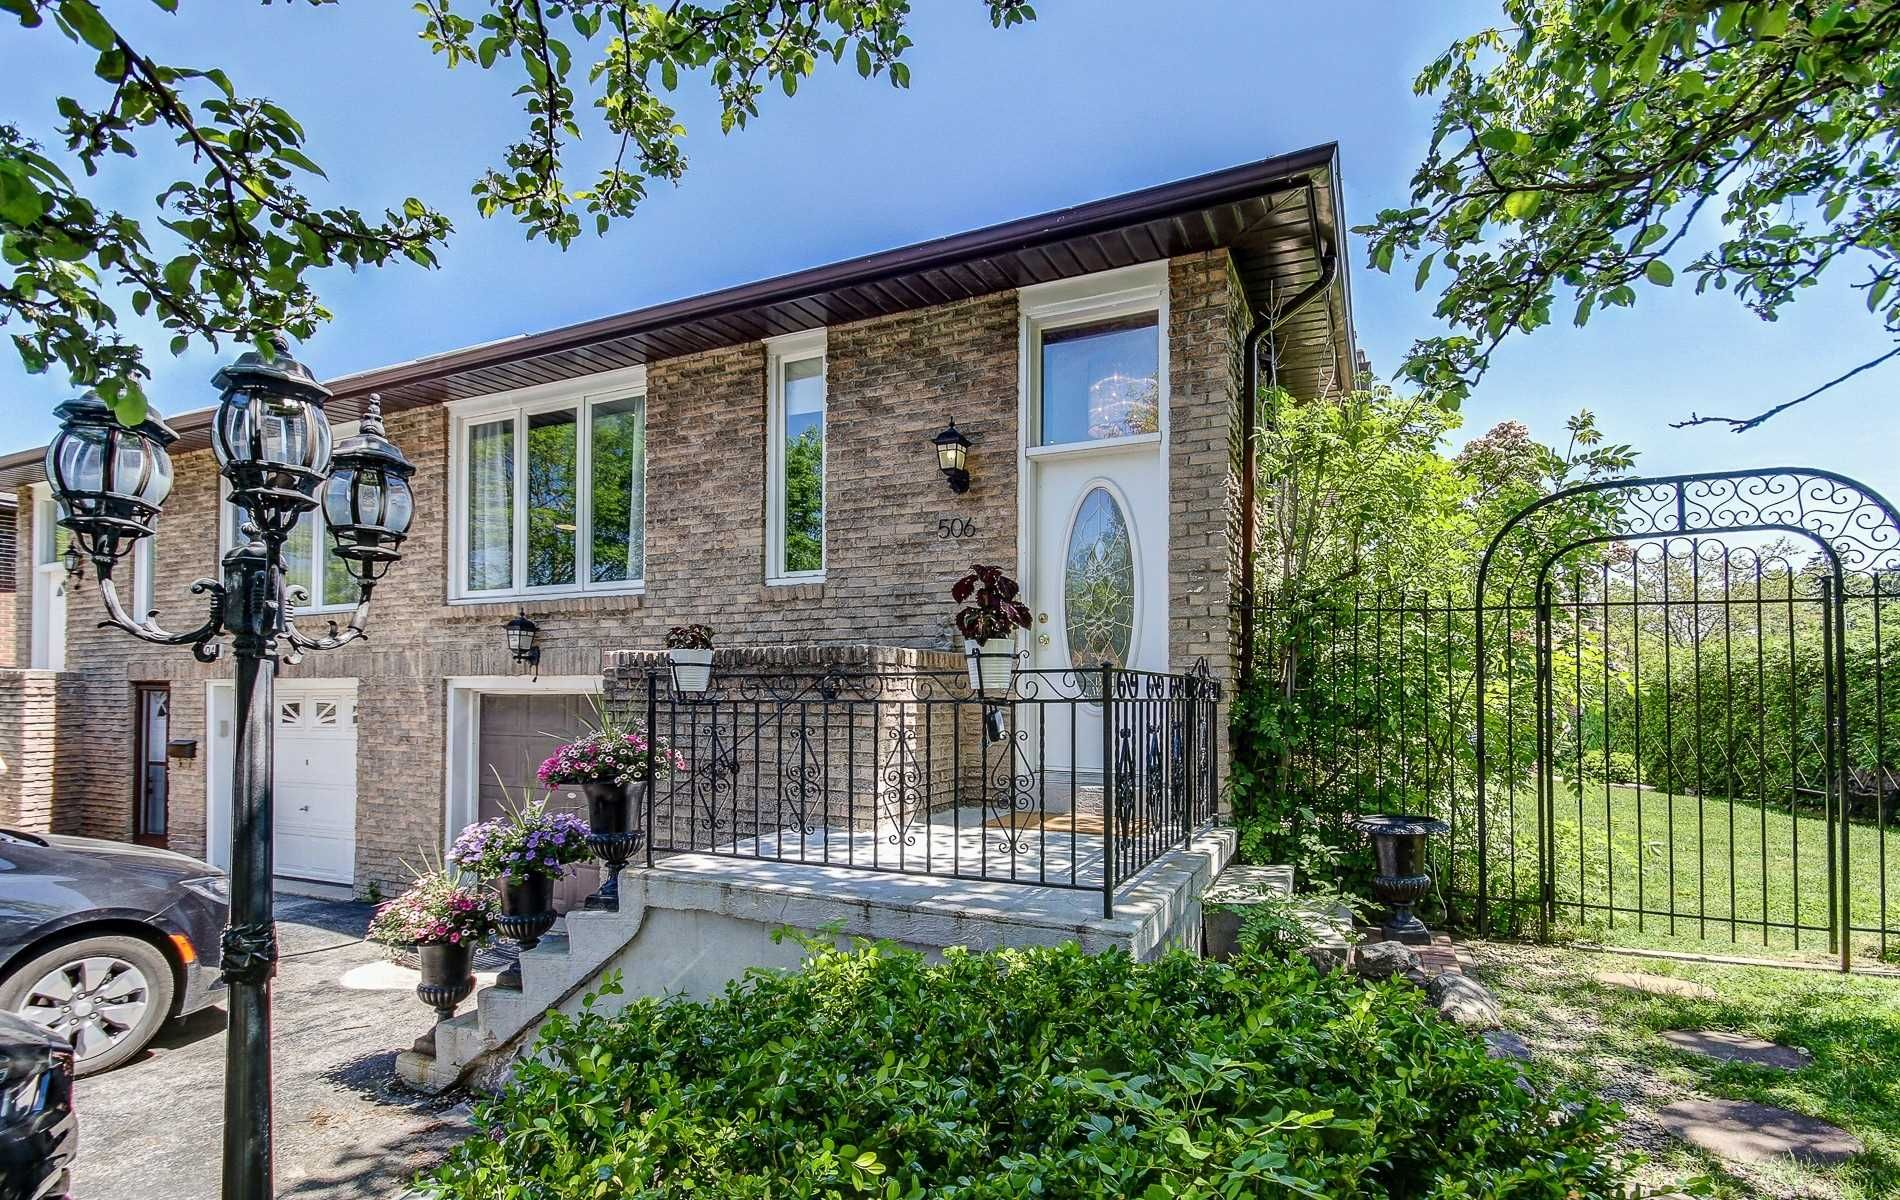 Main Photo: 506 Appledore Crescent in Mississauga: Cooksville House (Backsplit 5) for sale : MLS®# W4570793